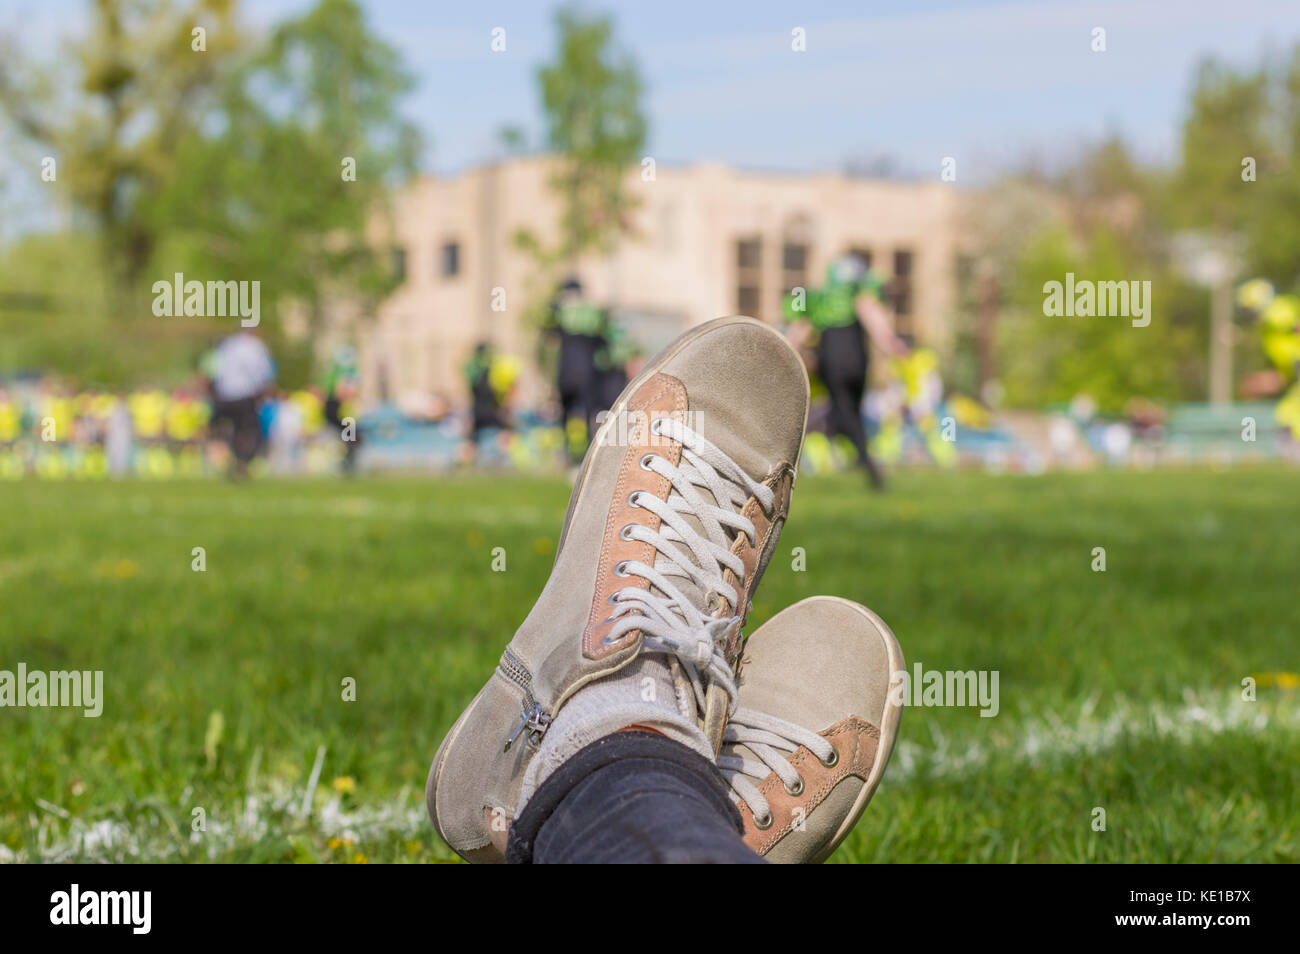 Close up of female watching football game: snickers shoes on background of American football match - Stock Image